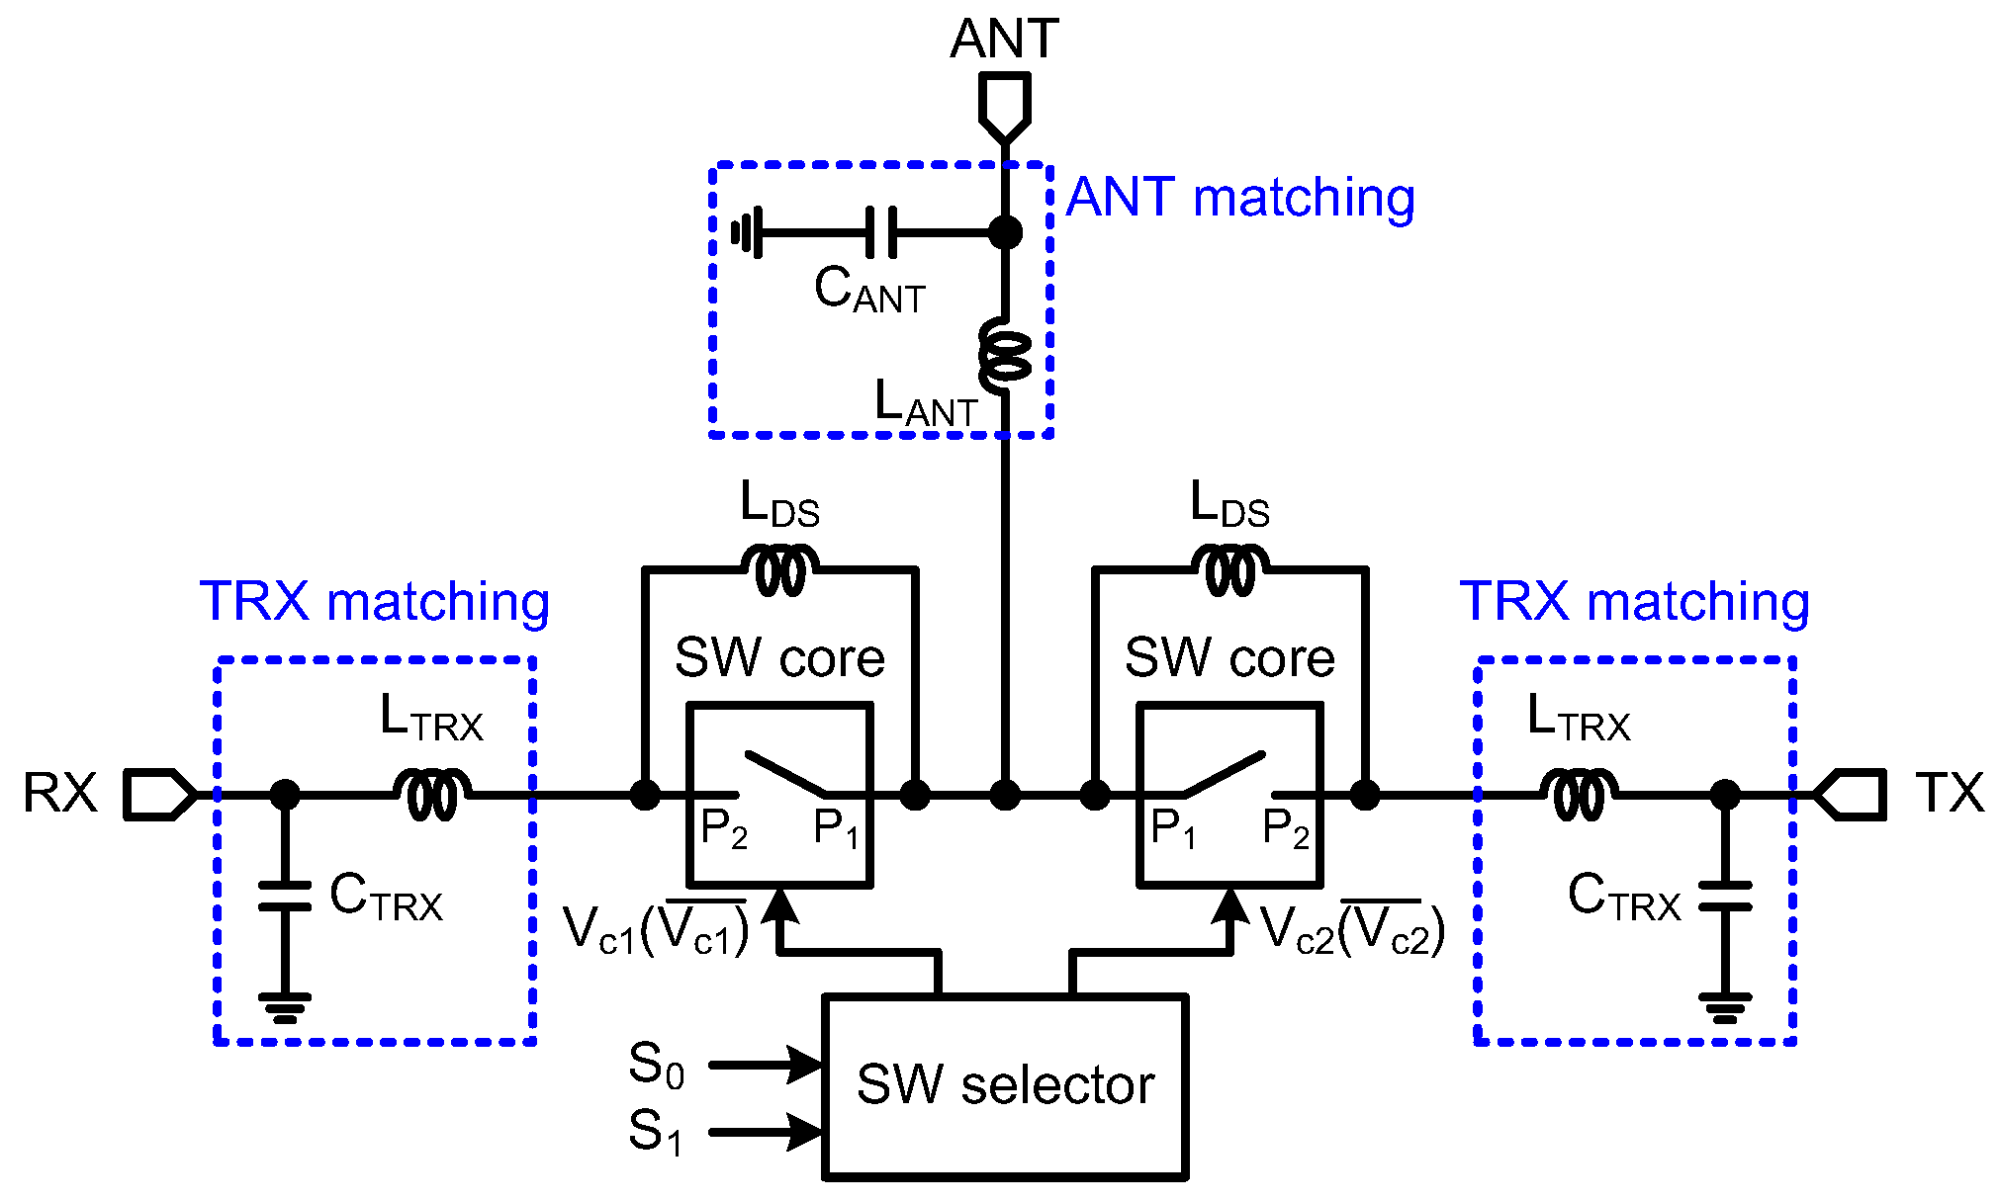 hight resolution of applsci 08 00196 g002 figure 2 block diagram of the proposed spdt switch